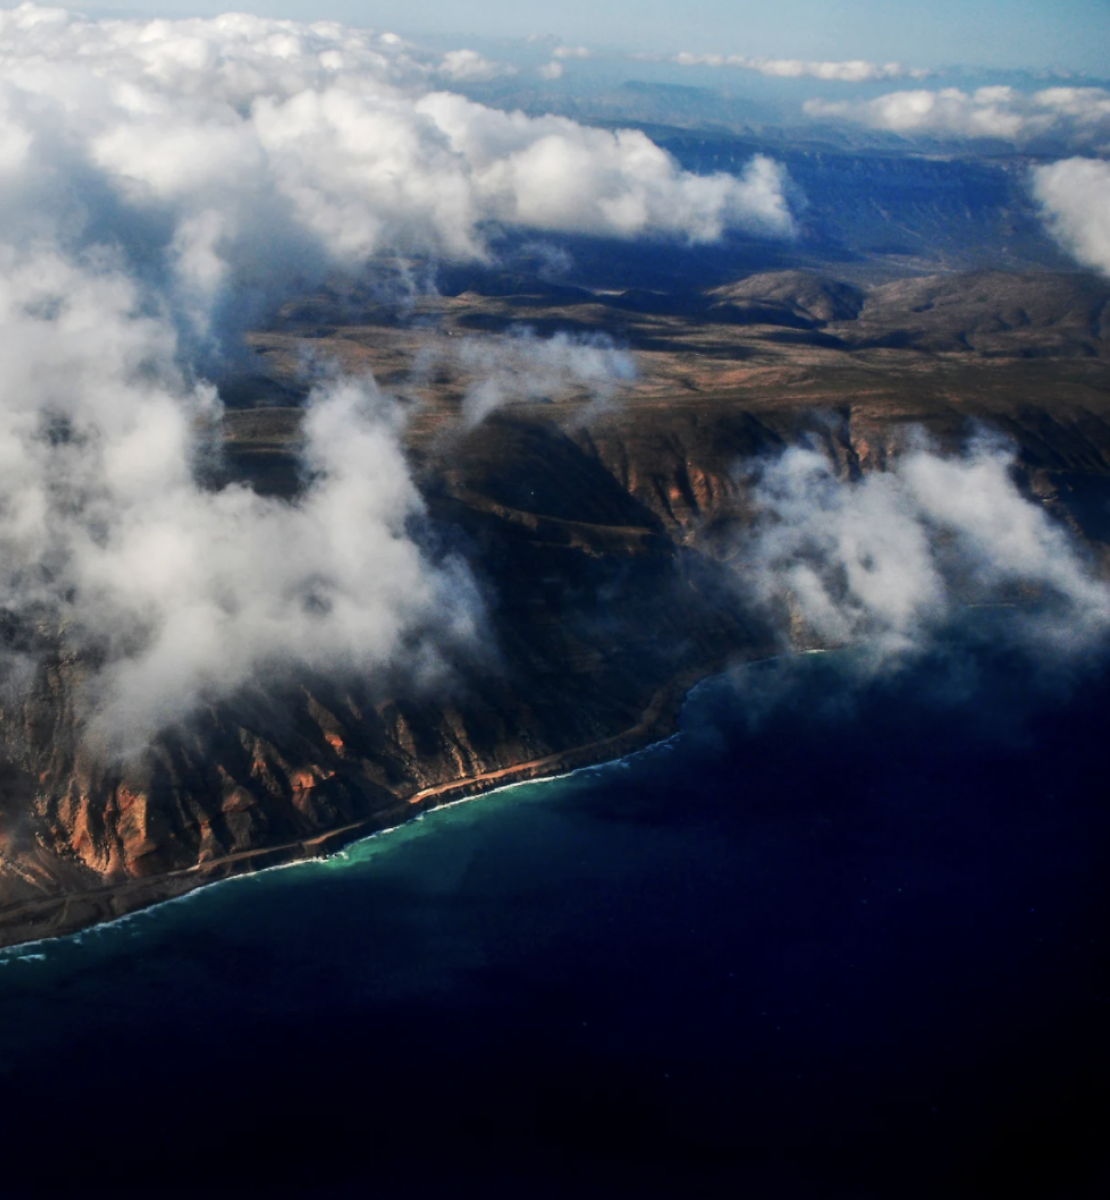 An areal shot of a coastline with clouds in the sky.